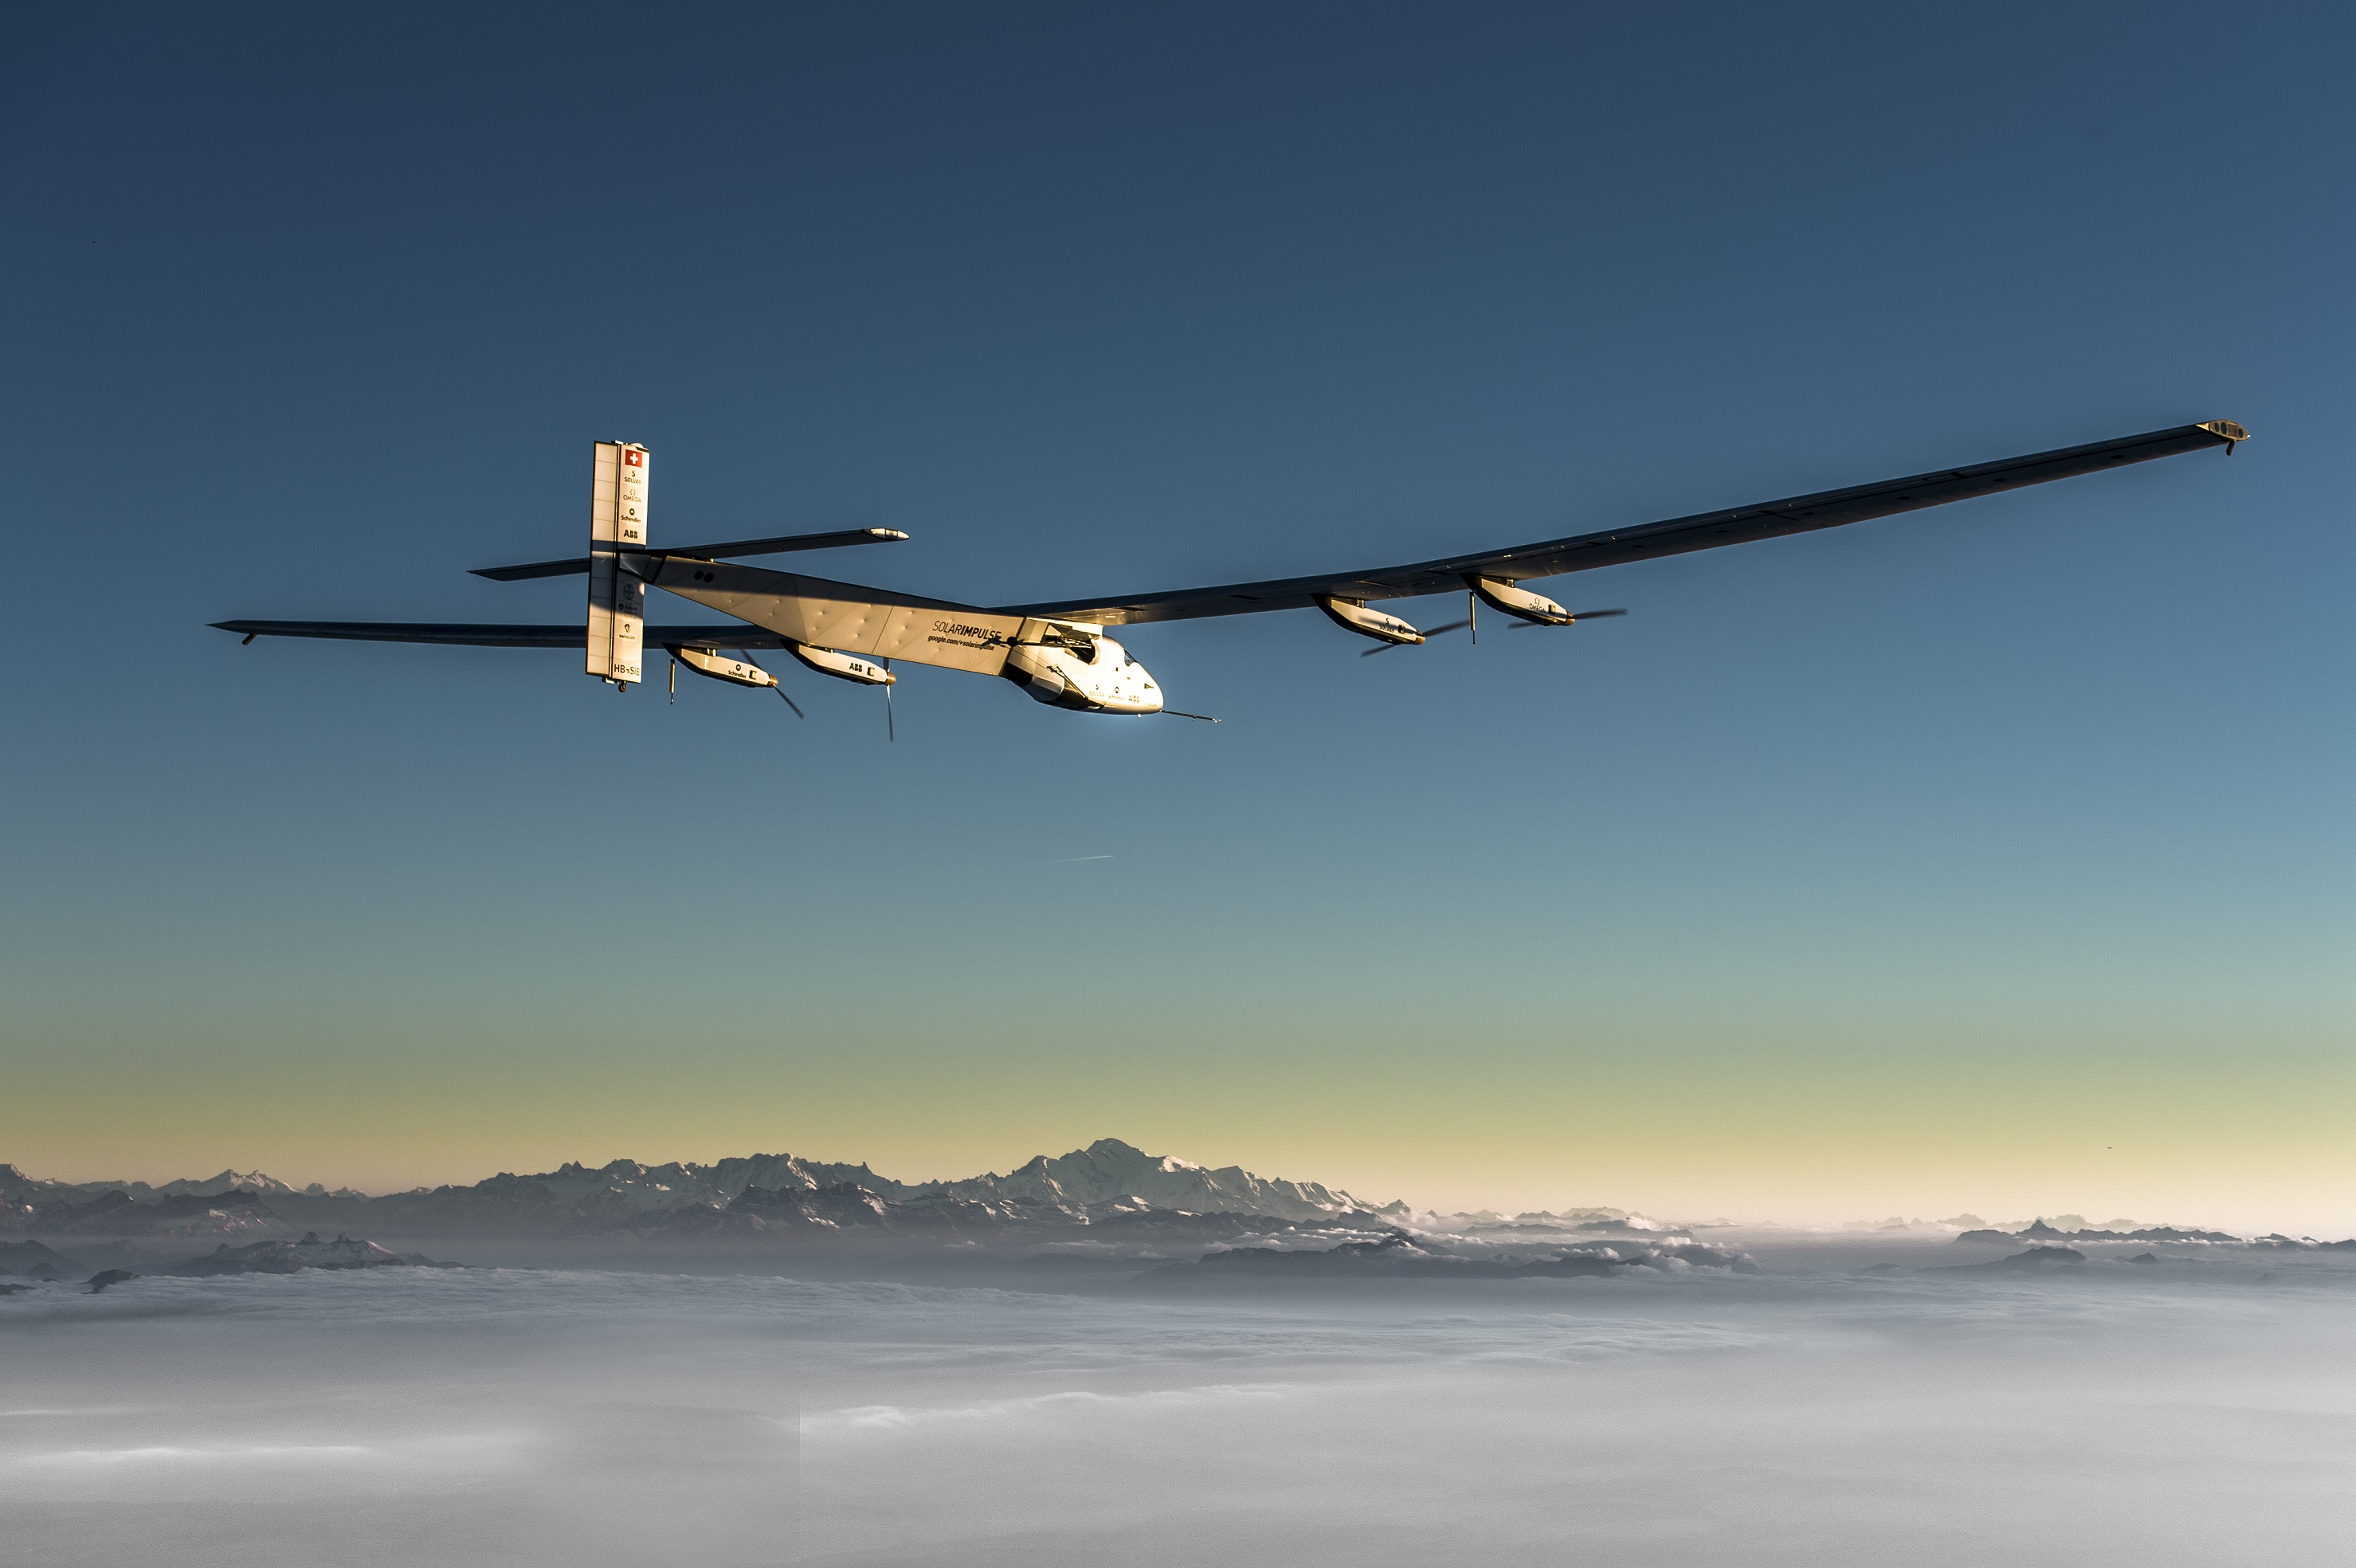 Solar Impulse is lifting off yet again for another trip.